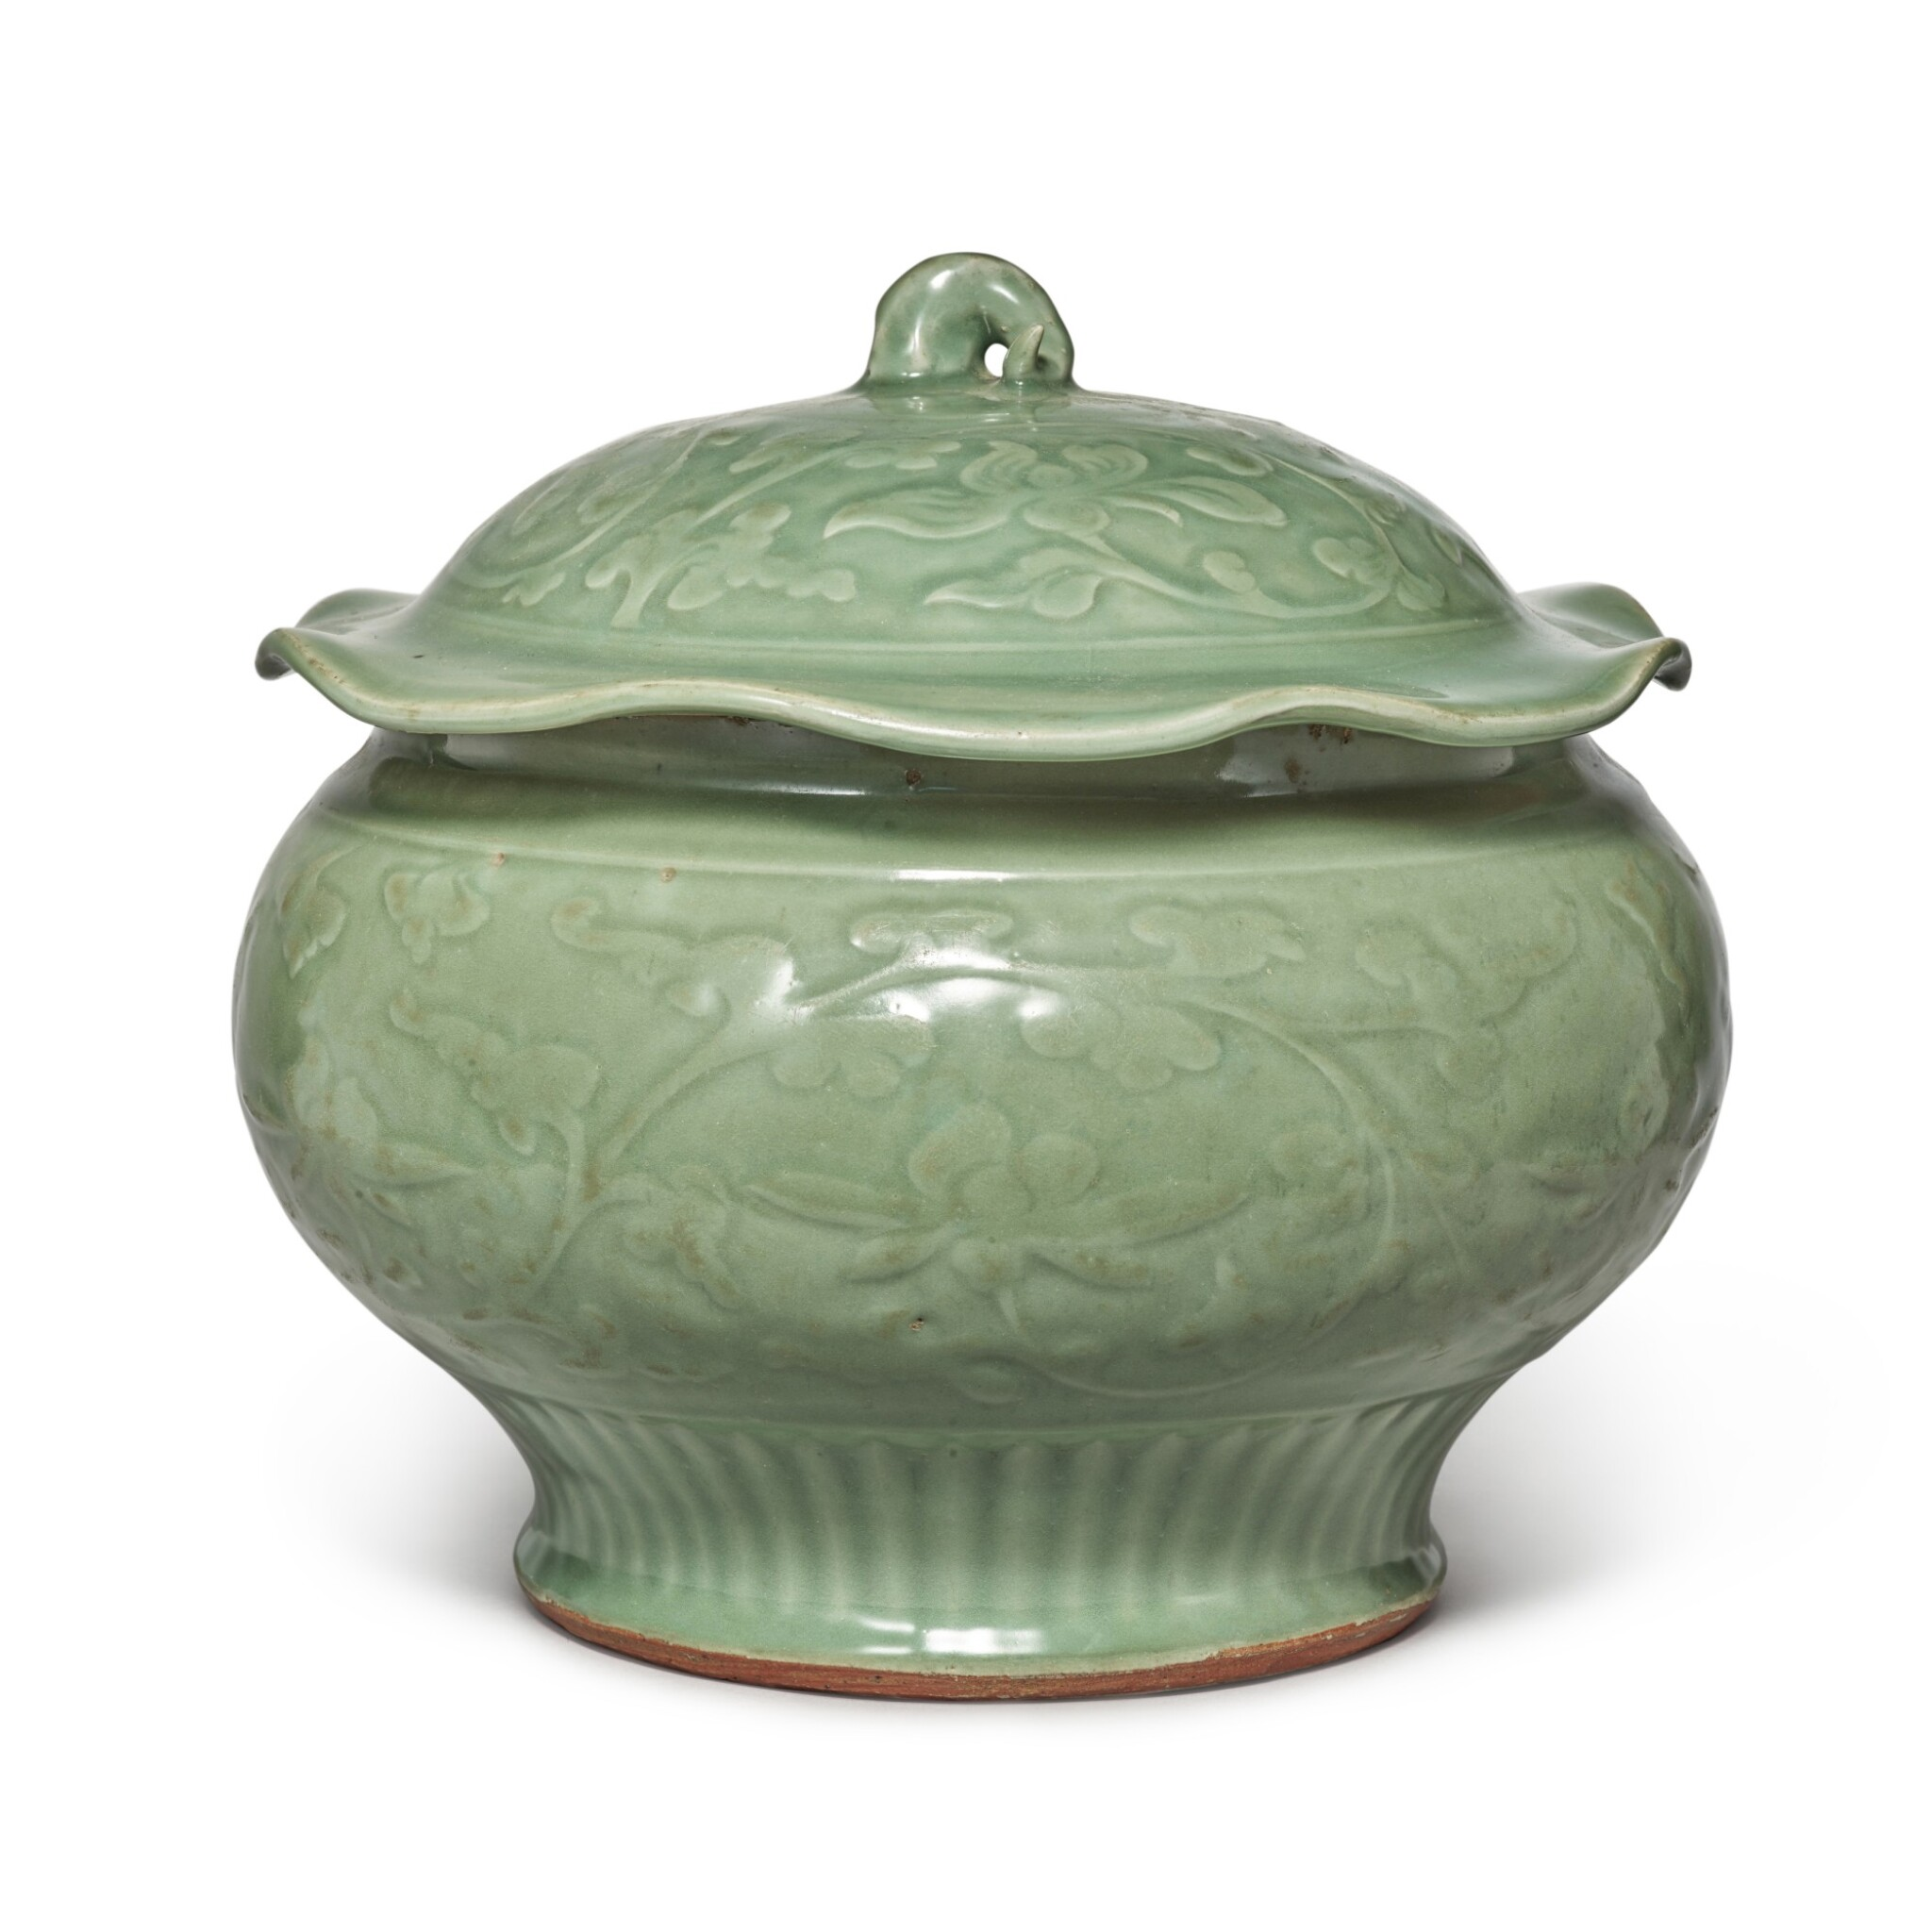 View full screen - View 1 of Lot 89. A 'Longquan' celadon-glazed 'lotus' jar and cover, Late Yuan / early Ming dynasty | 元末 / 明初 龍泉窰青釉纏枝蓮紋蓋罐.